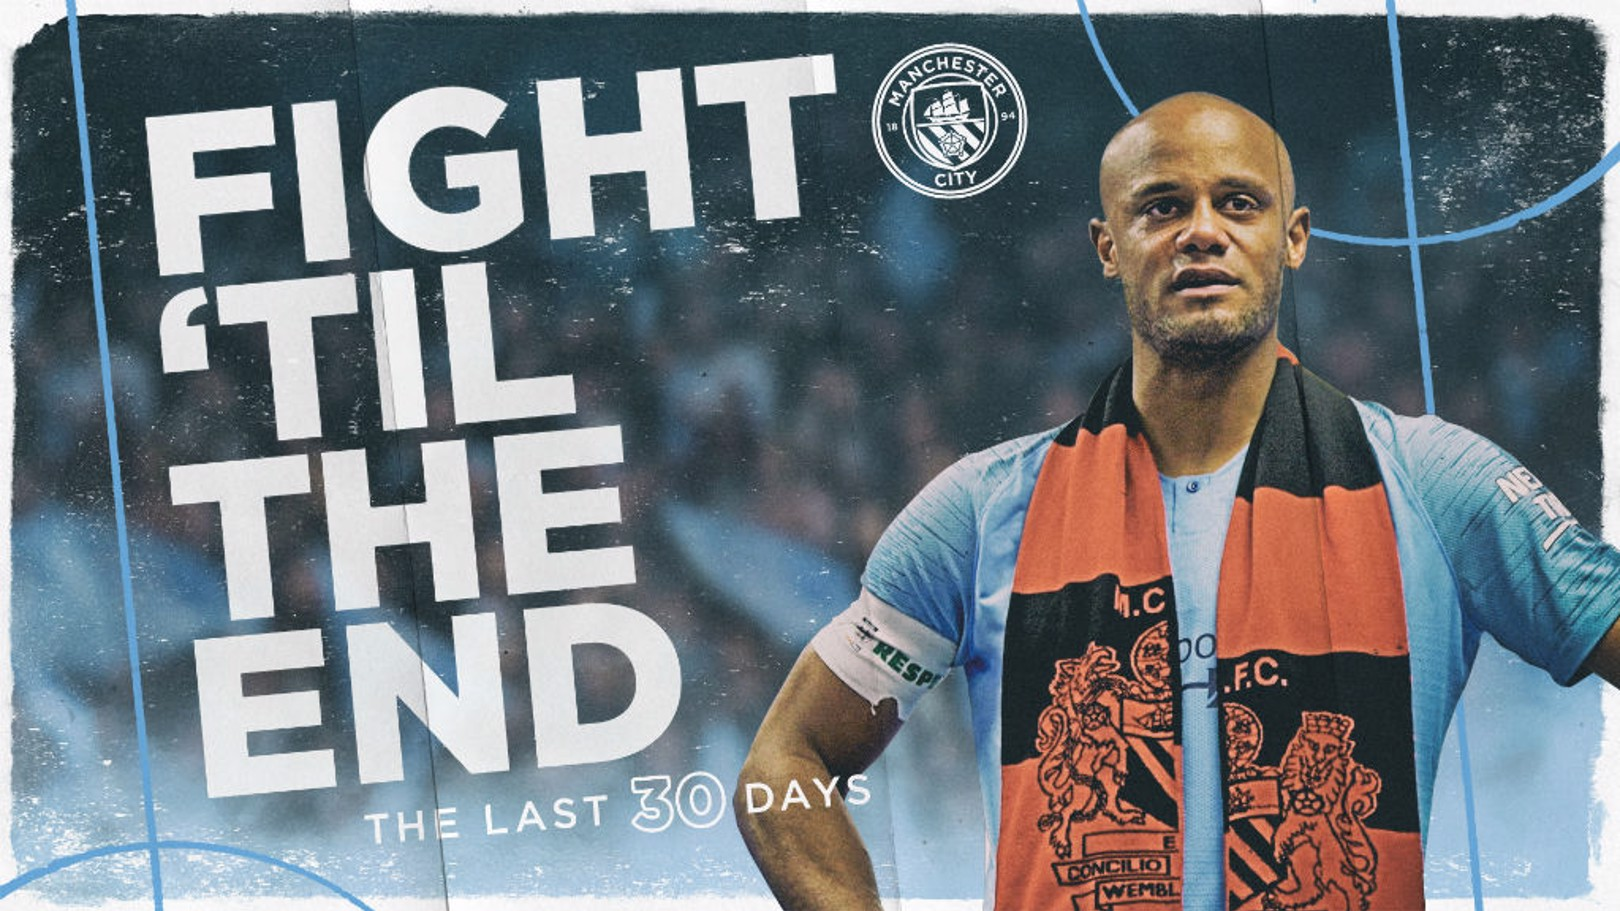 FIGHT 'TIL THE END: Our exclusive CityTV documentary will be released this week.